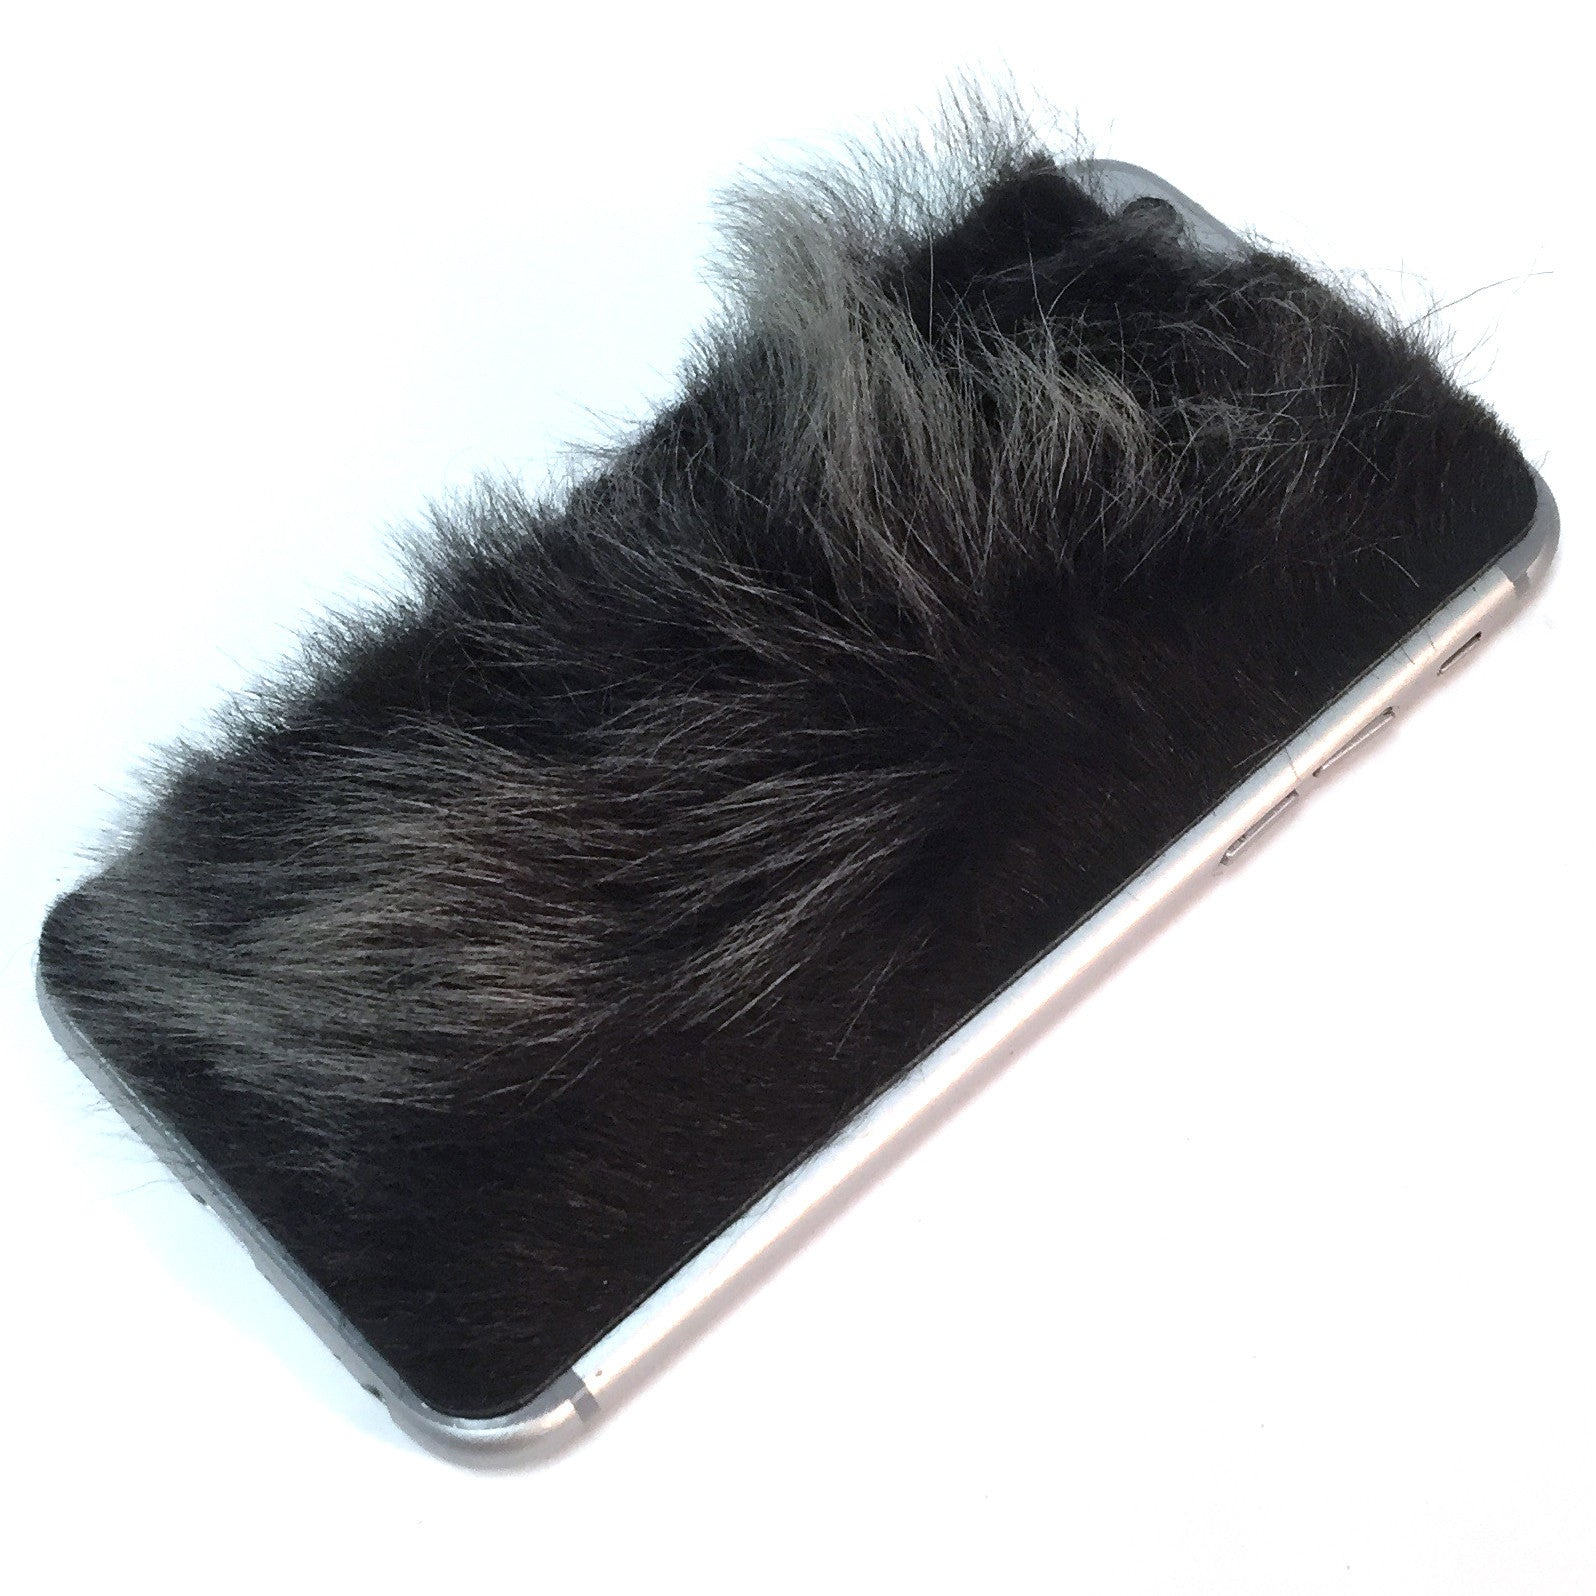 Two Tone Black Sheep Fur iPhone 7 Leather Skin